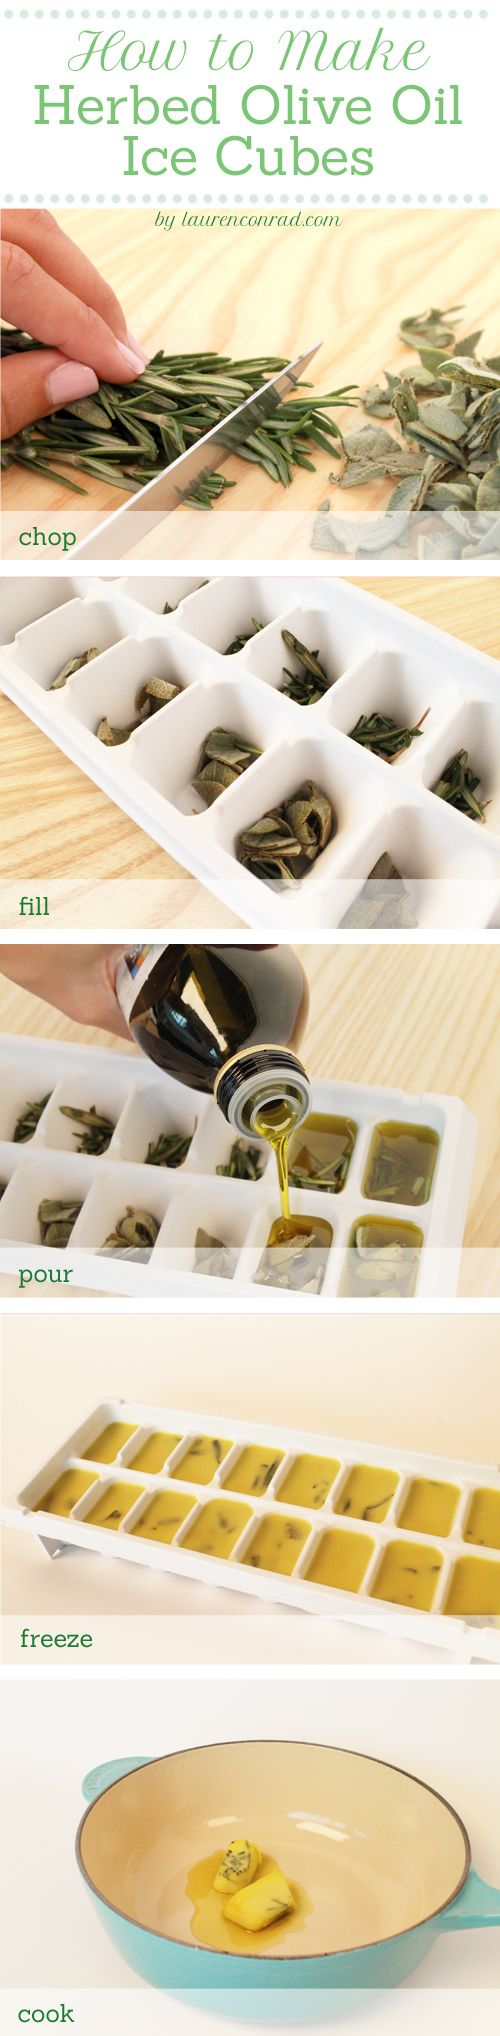 how to make herb-infused olive oil ice cubes {favorite kitchen tricks!}